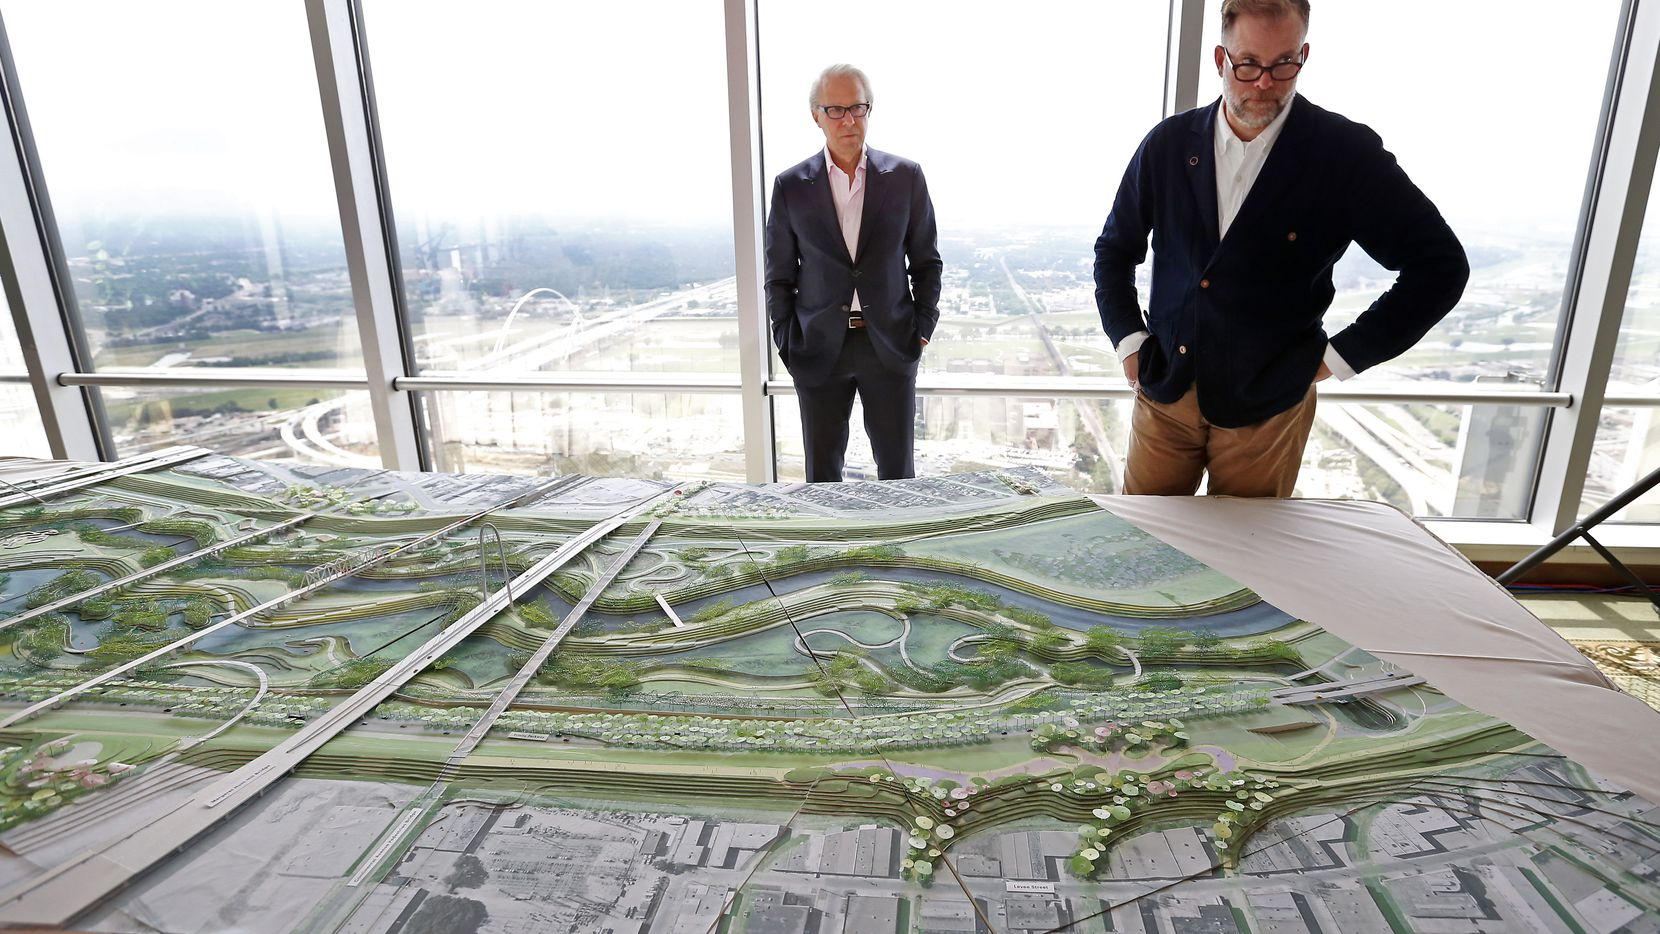 Brent Brown (right), architect and founding director of BC Workshop and Dallas CityDesign Studio, and John H. Alschuler, chairman of HR&A, are seen in an interview talking about a model of the Trinity River Park plan at the City Club in Dallas, Thursday, May 19, 2016.